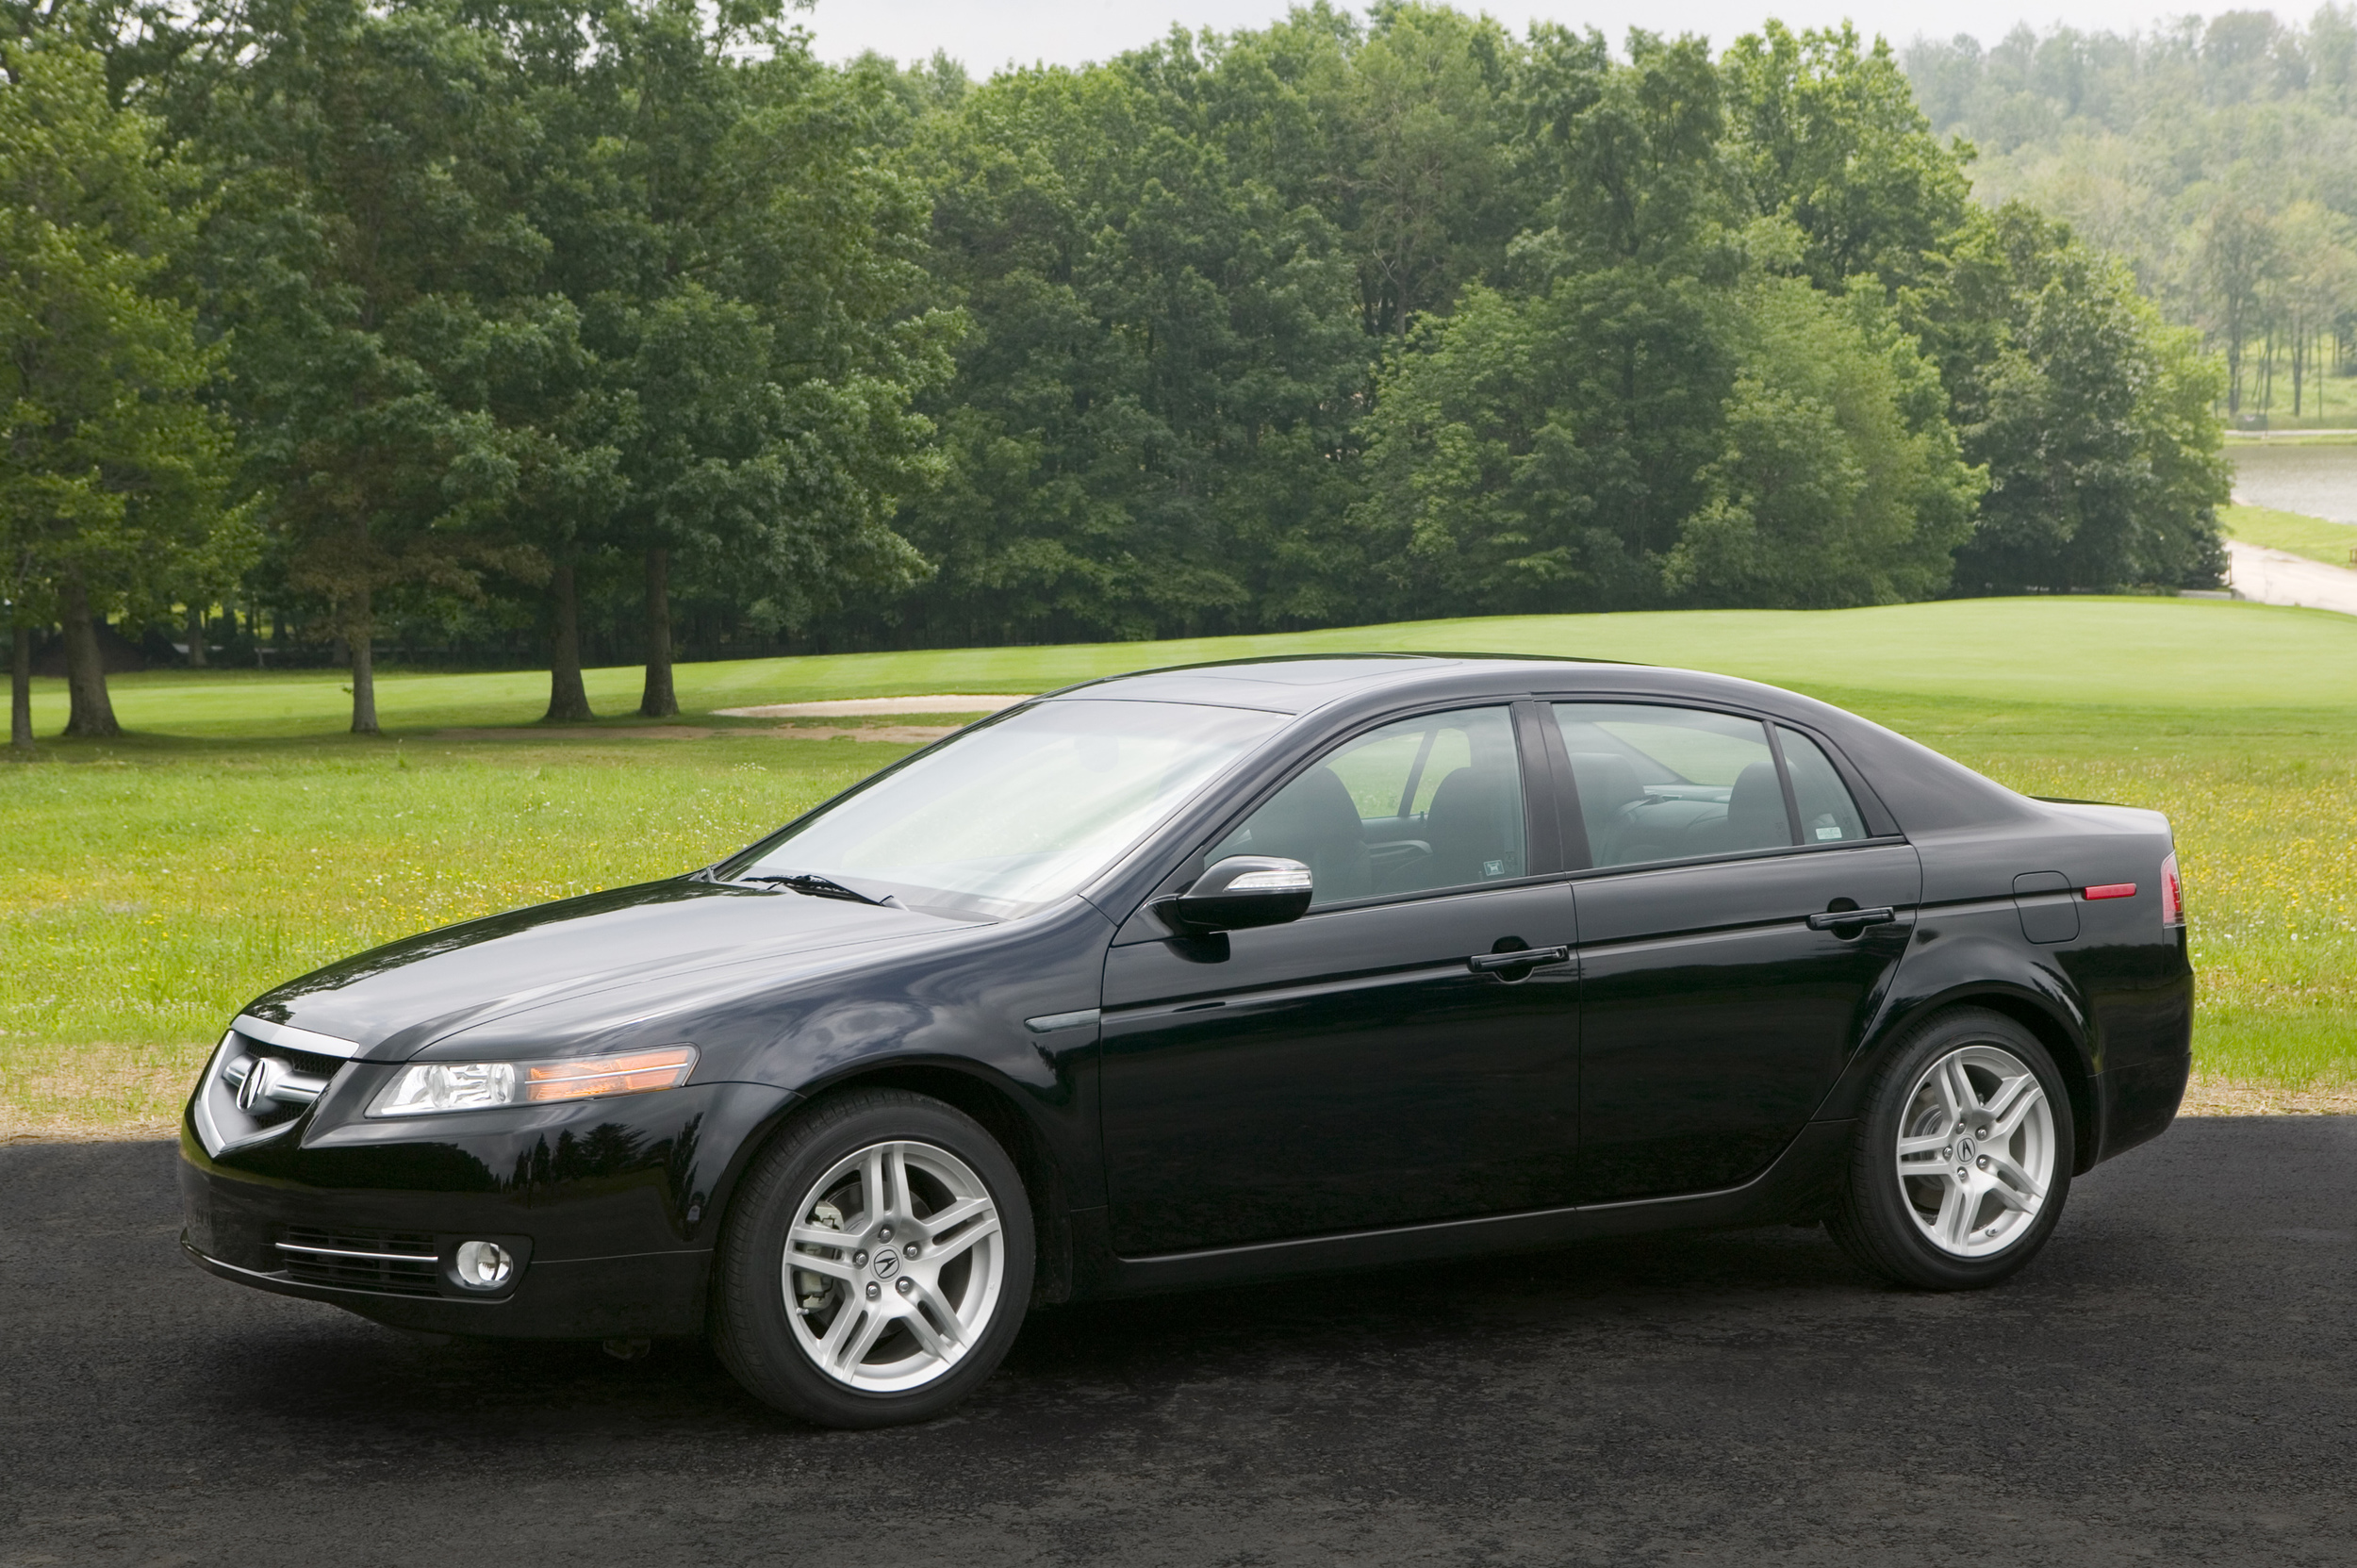 Best 10-year-old cars for less than $10,000